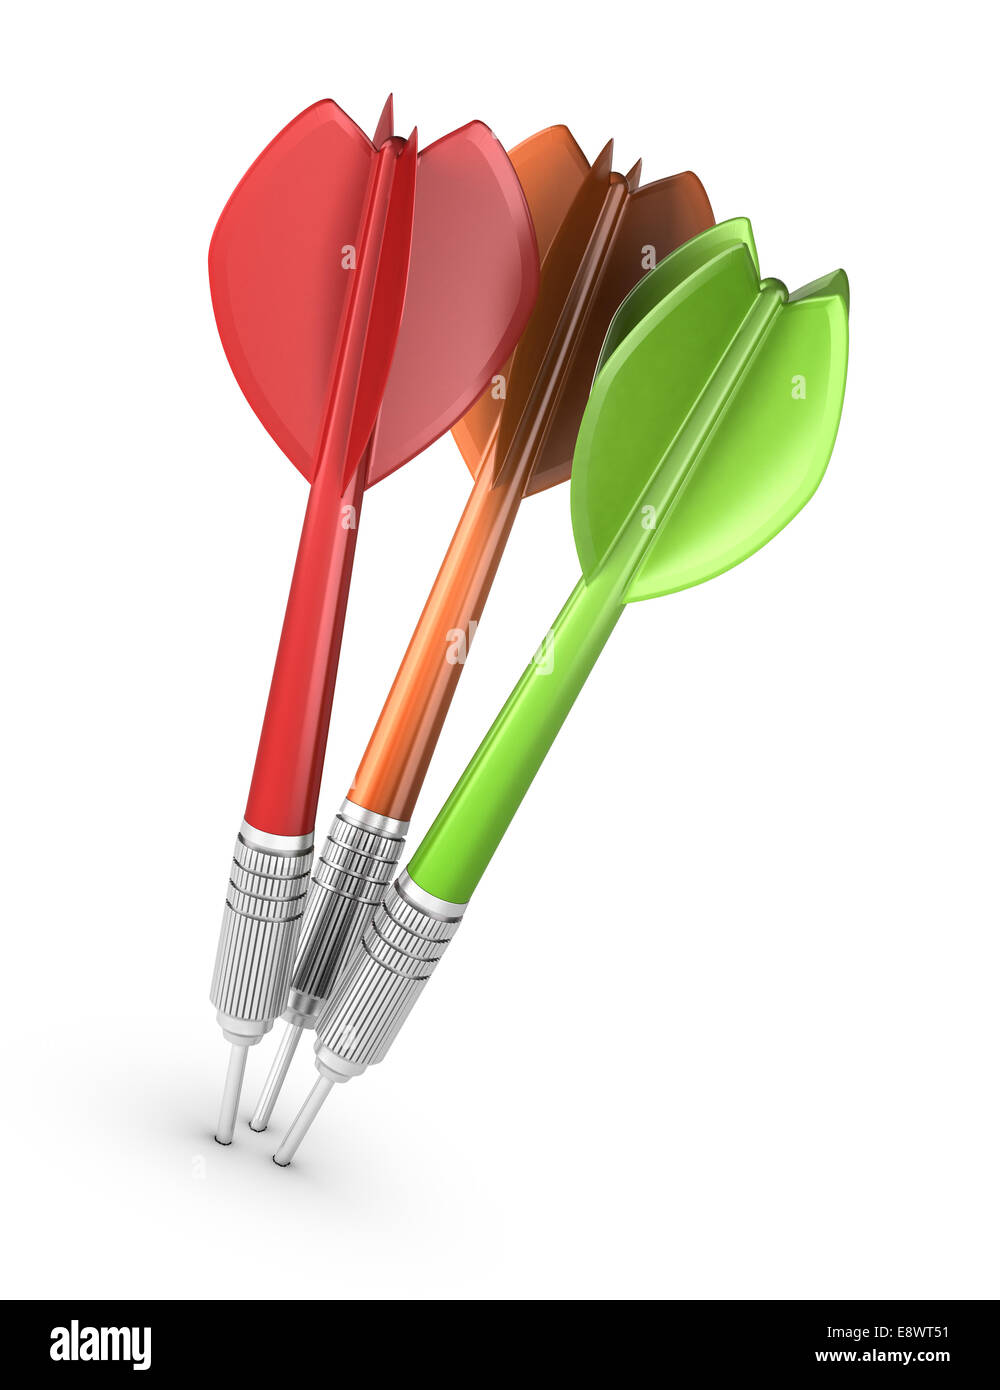 Three darts hitting the center of a dartboard over white background, modern design for illustration purpose. Concept - Stock Image